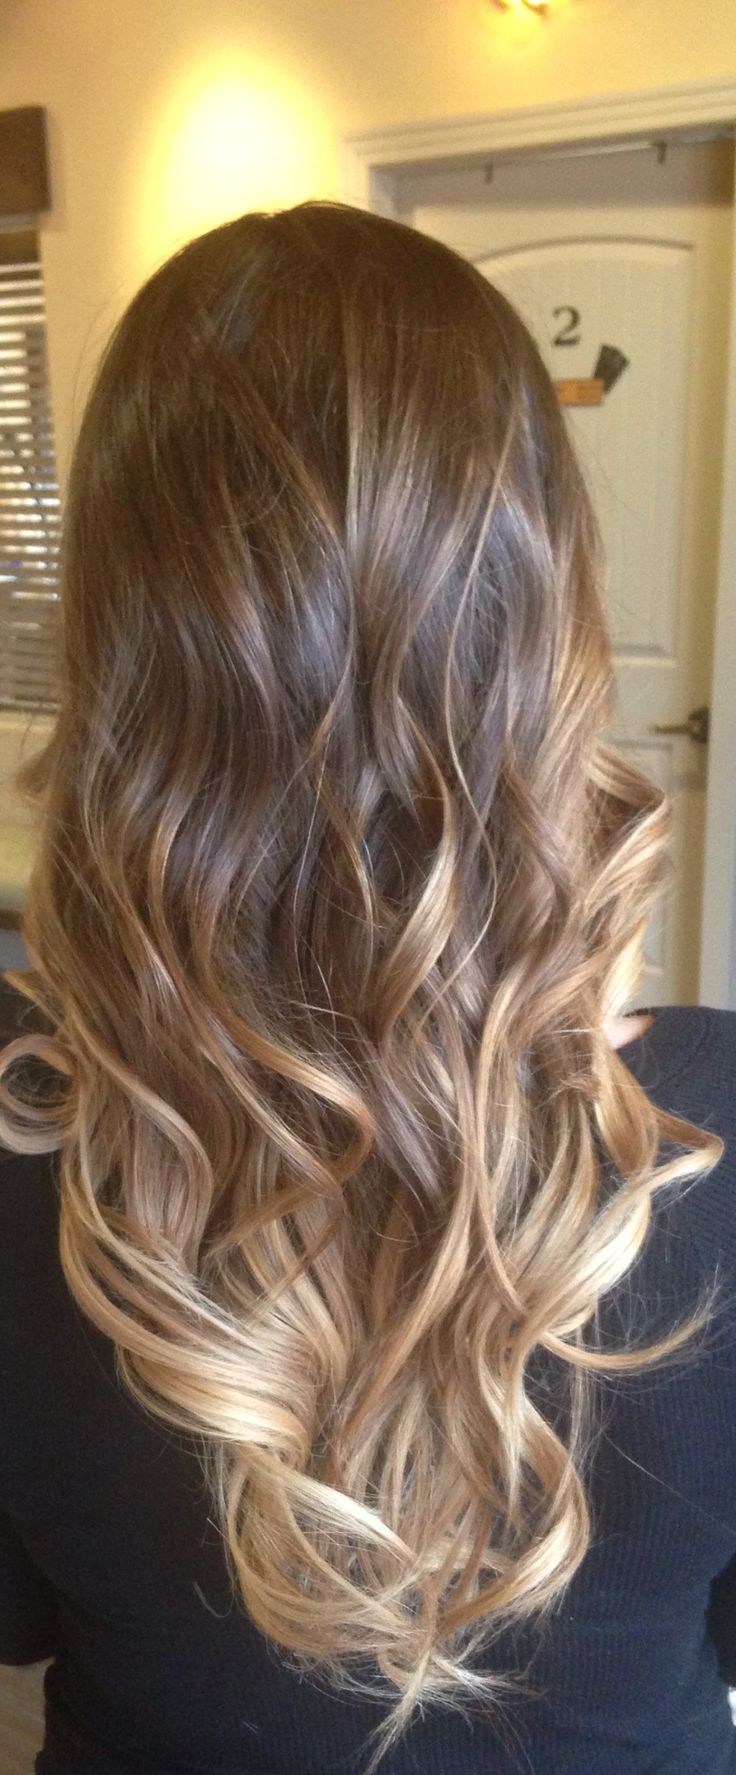 A combination of balayage and ombre hair - Hairpop.net - Hair Pop Hair Shop